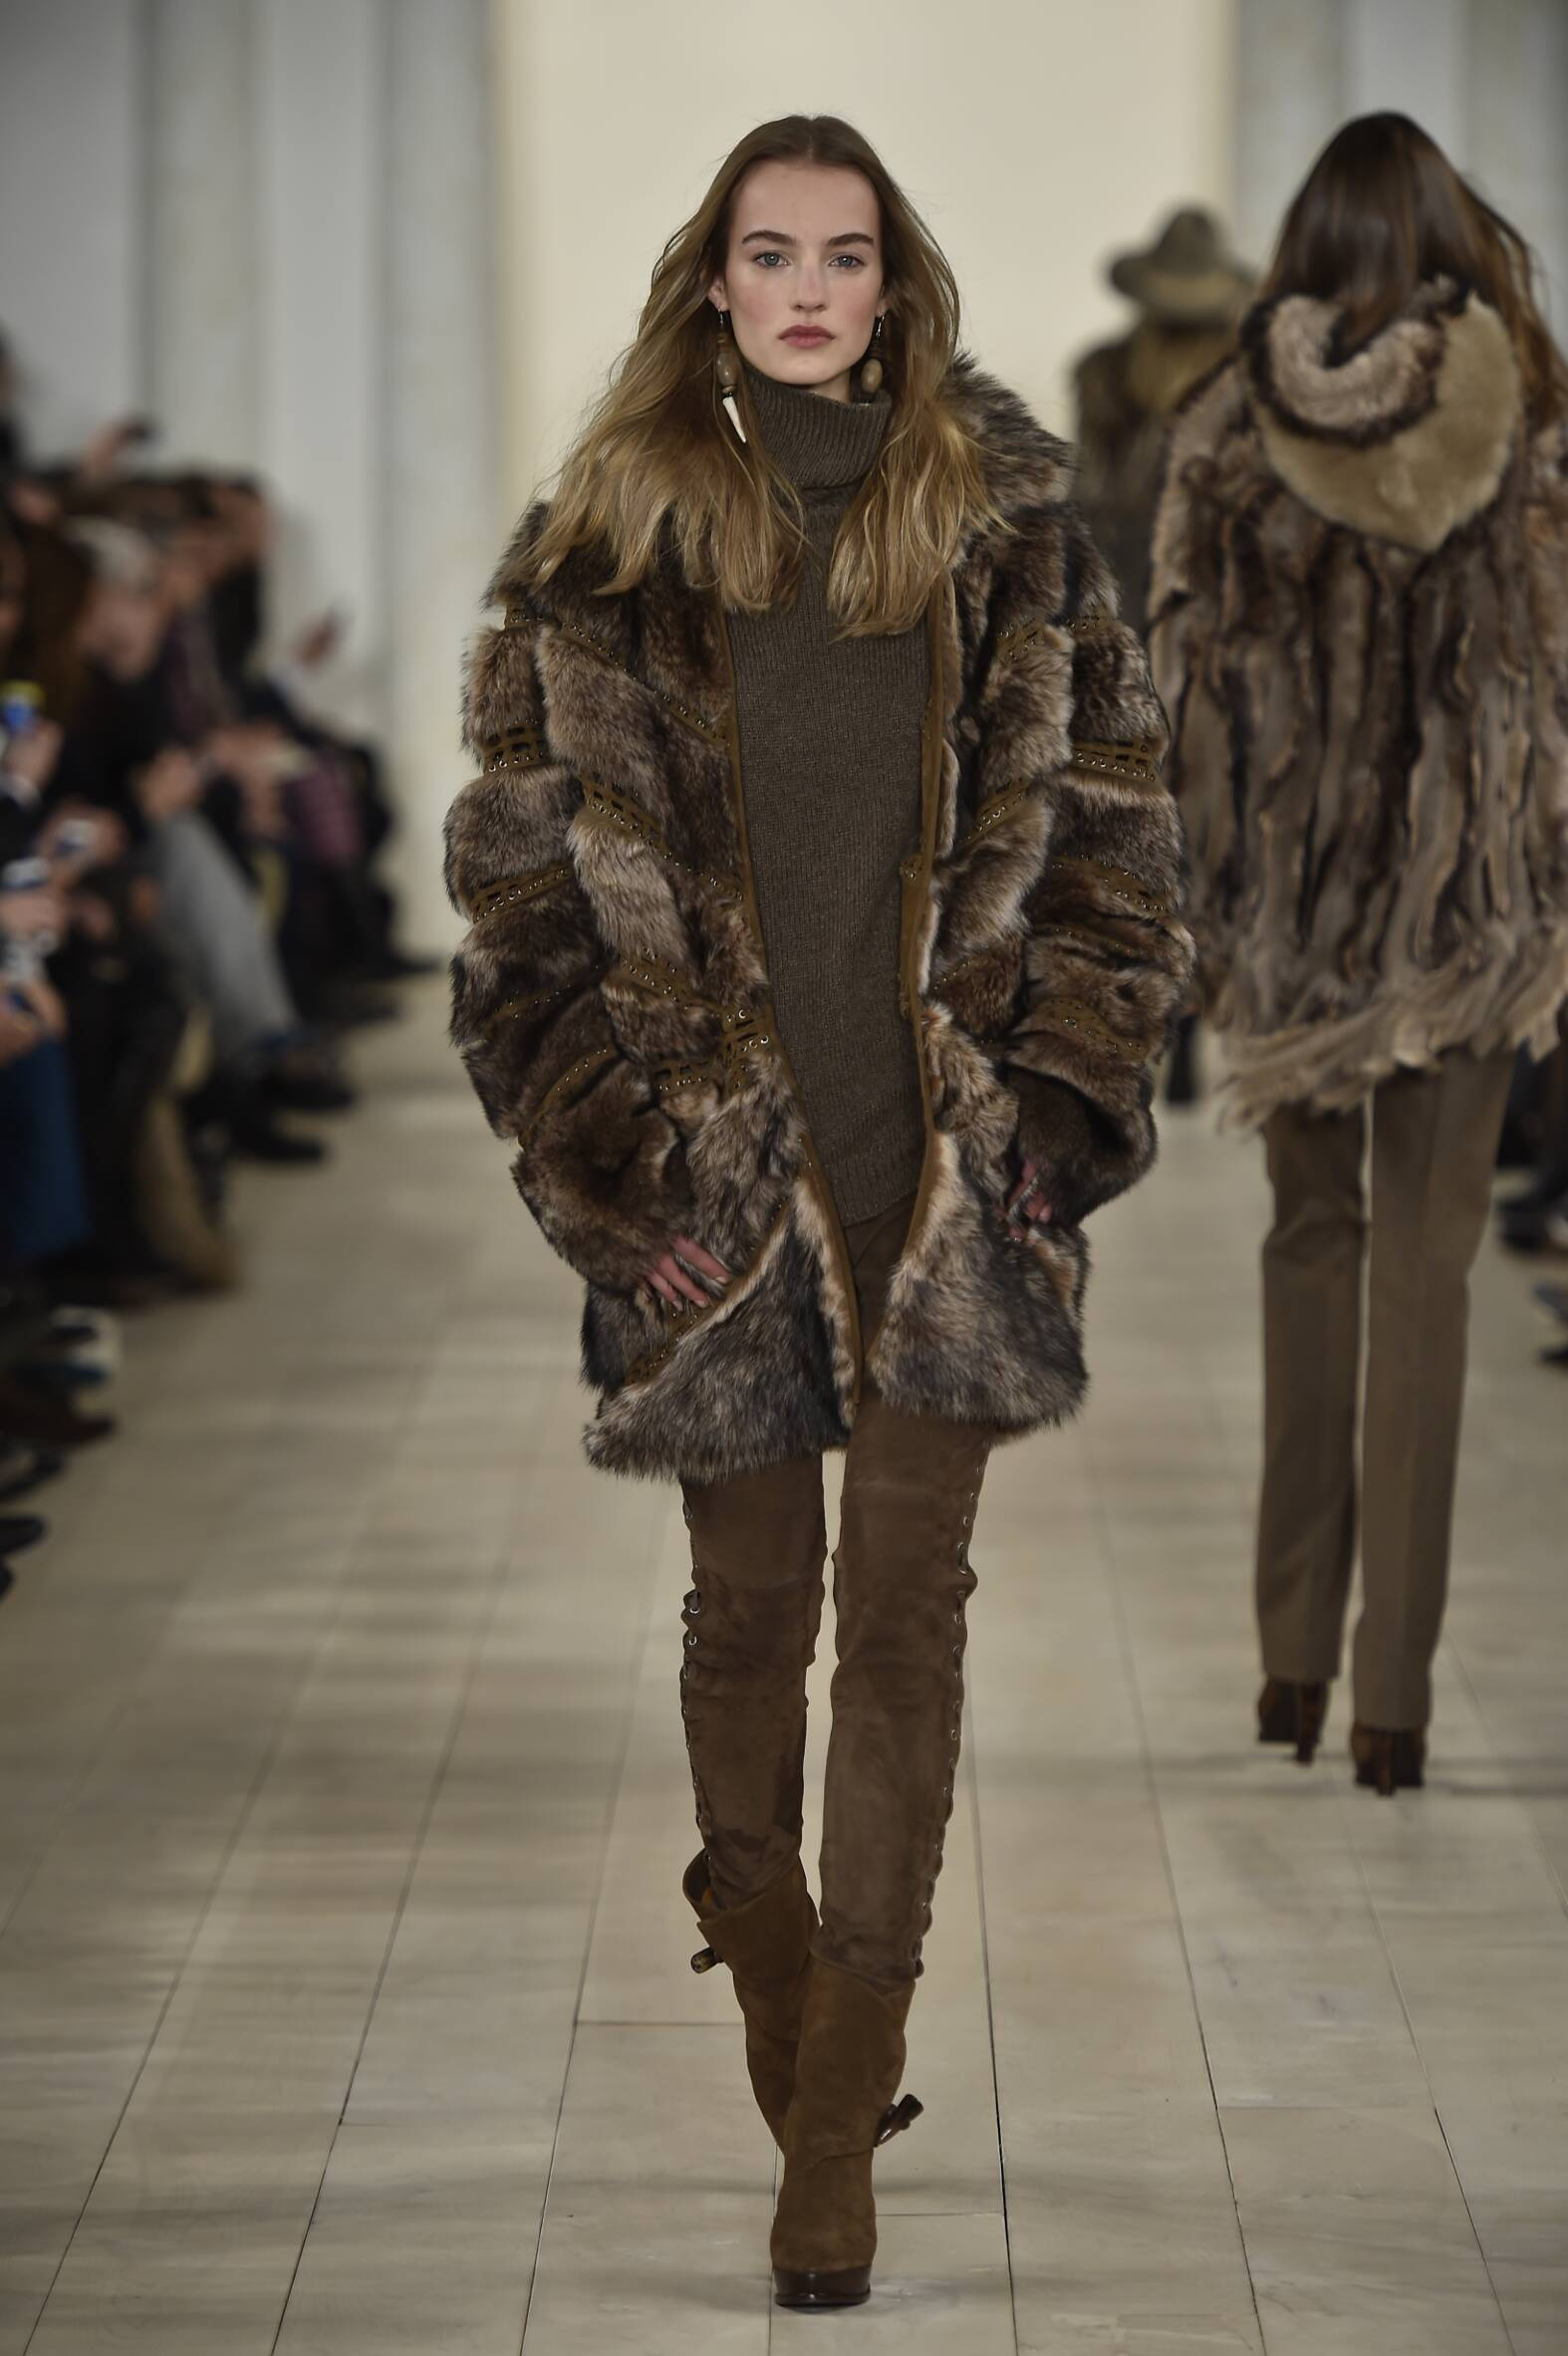 RALPH LAUREN FALL 2015 WOMEN'S COLLECTION